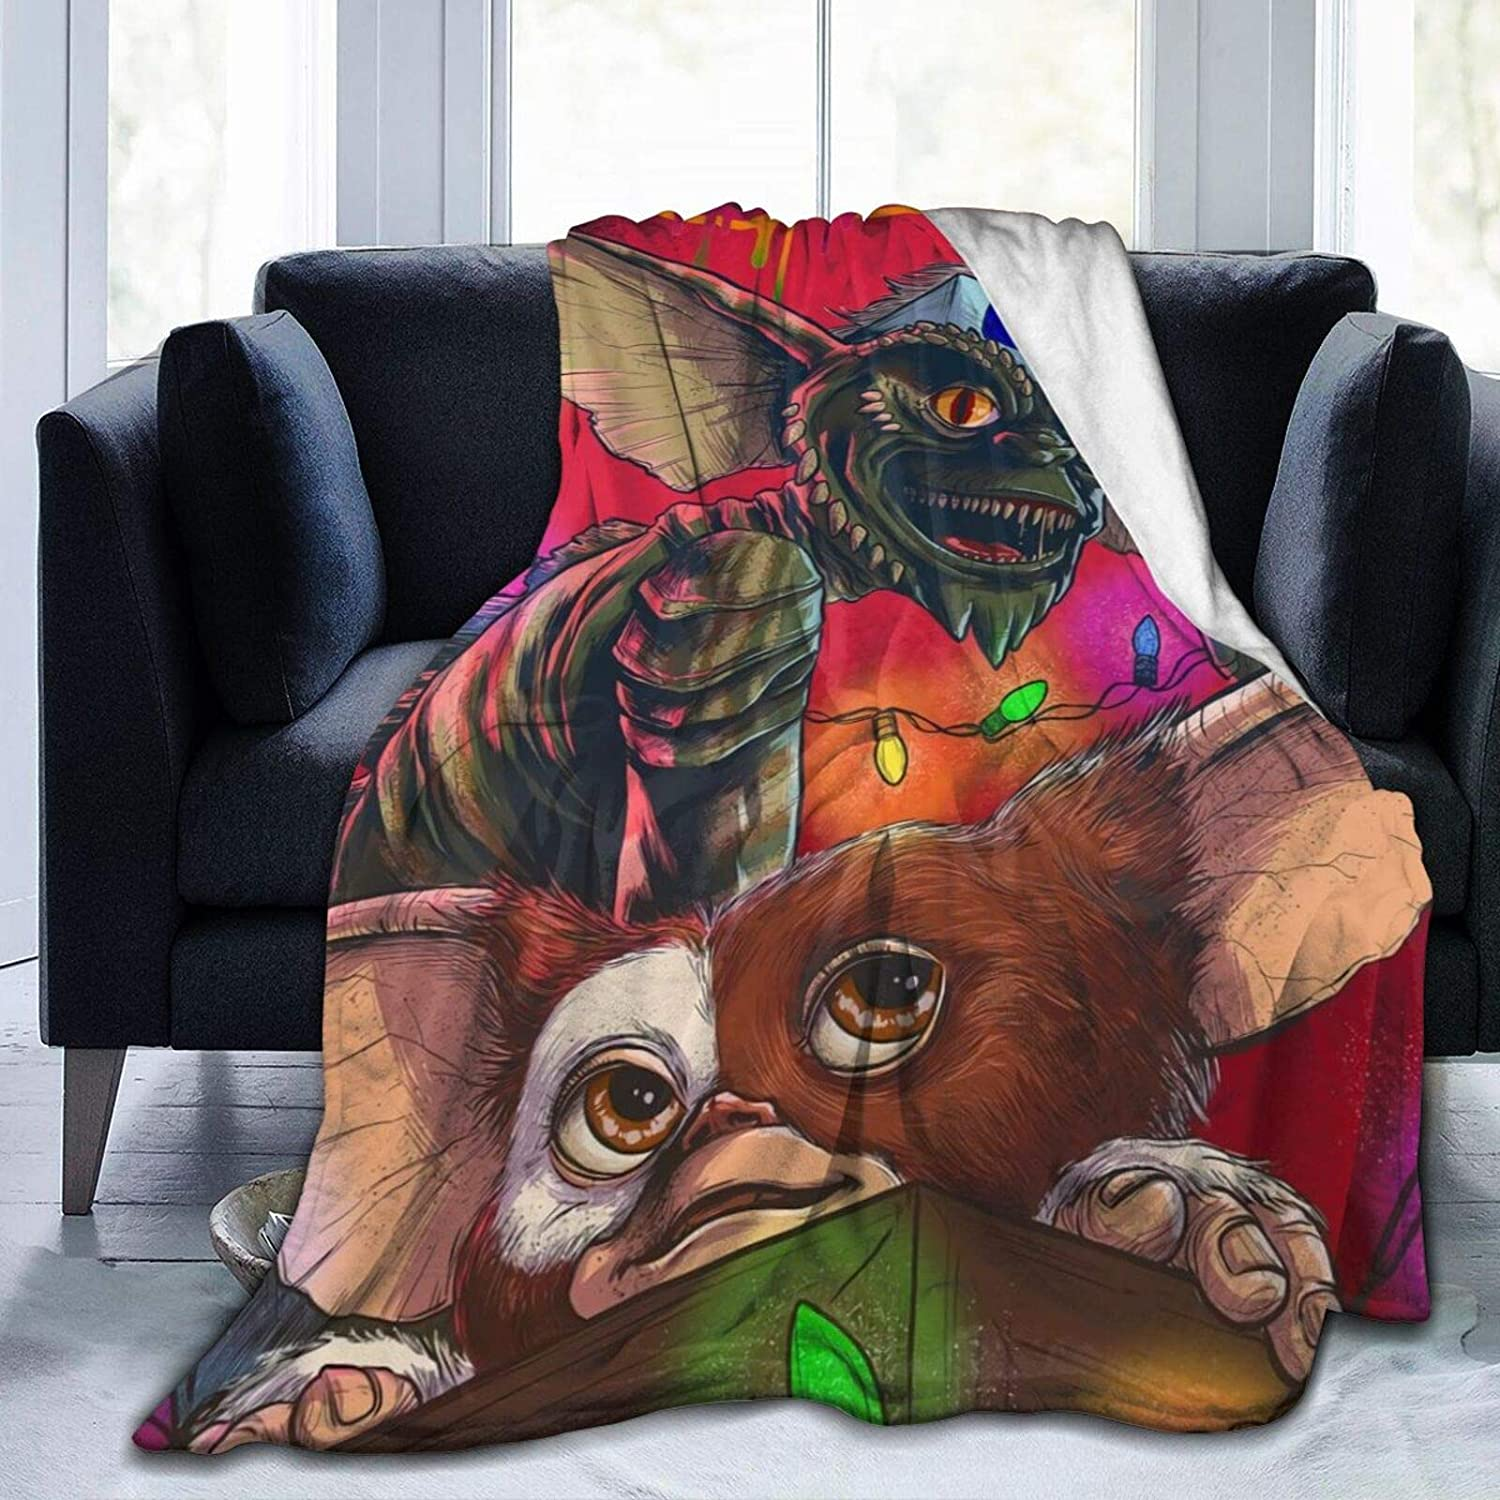 Gremlins Luxury Blanket Sofa Soft New Shipping Free for Blankets Flannel B Wholesale